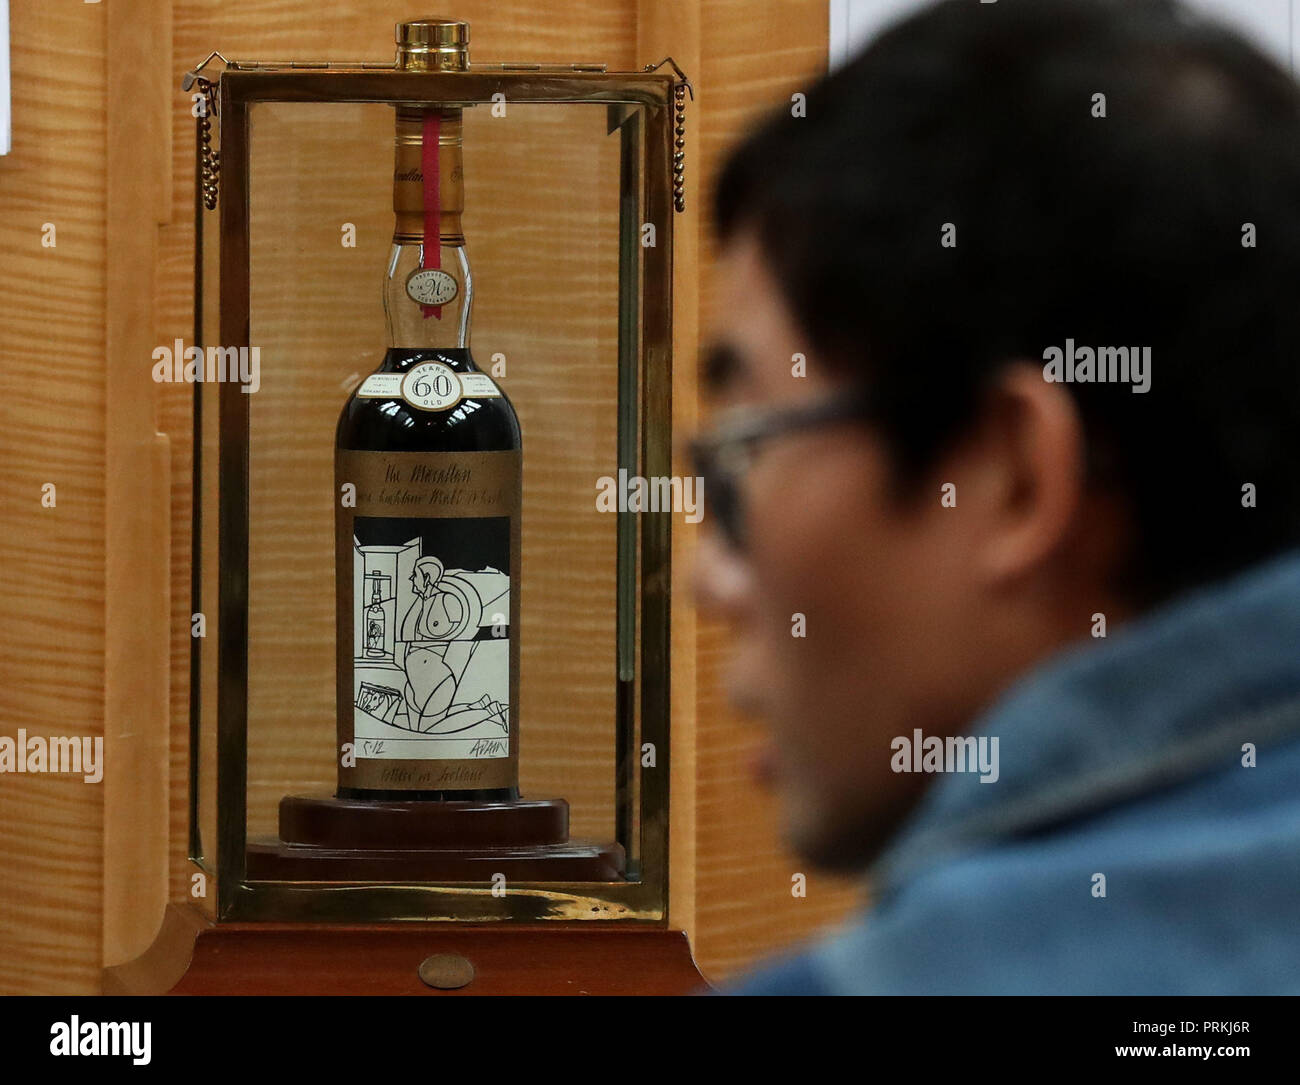 The bottle of the world's rarest and most valuable whisky, The Macallan Valerio Adami sits in the auction room ahead of it being sold for £848,750 at the Bonhams Whisky Sale at their Edinburgh auction house. - Stock Image